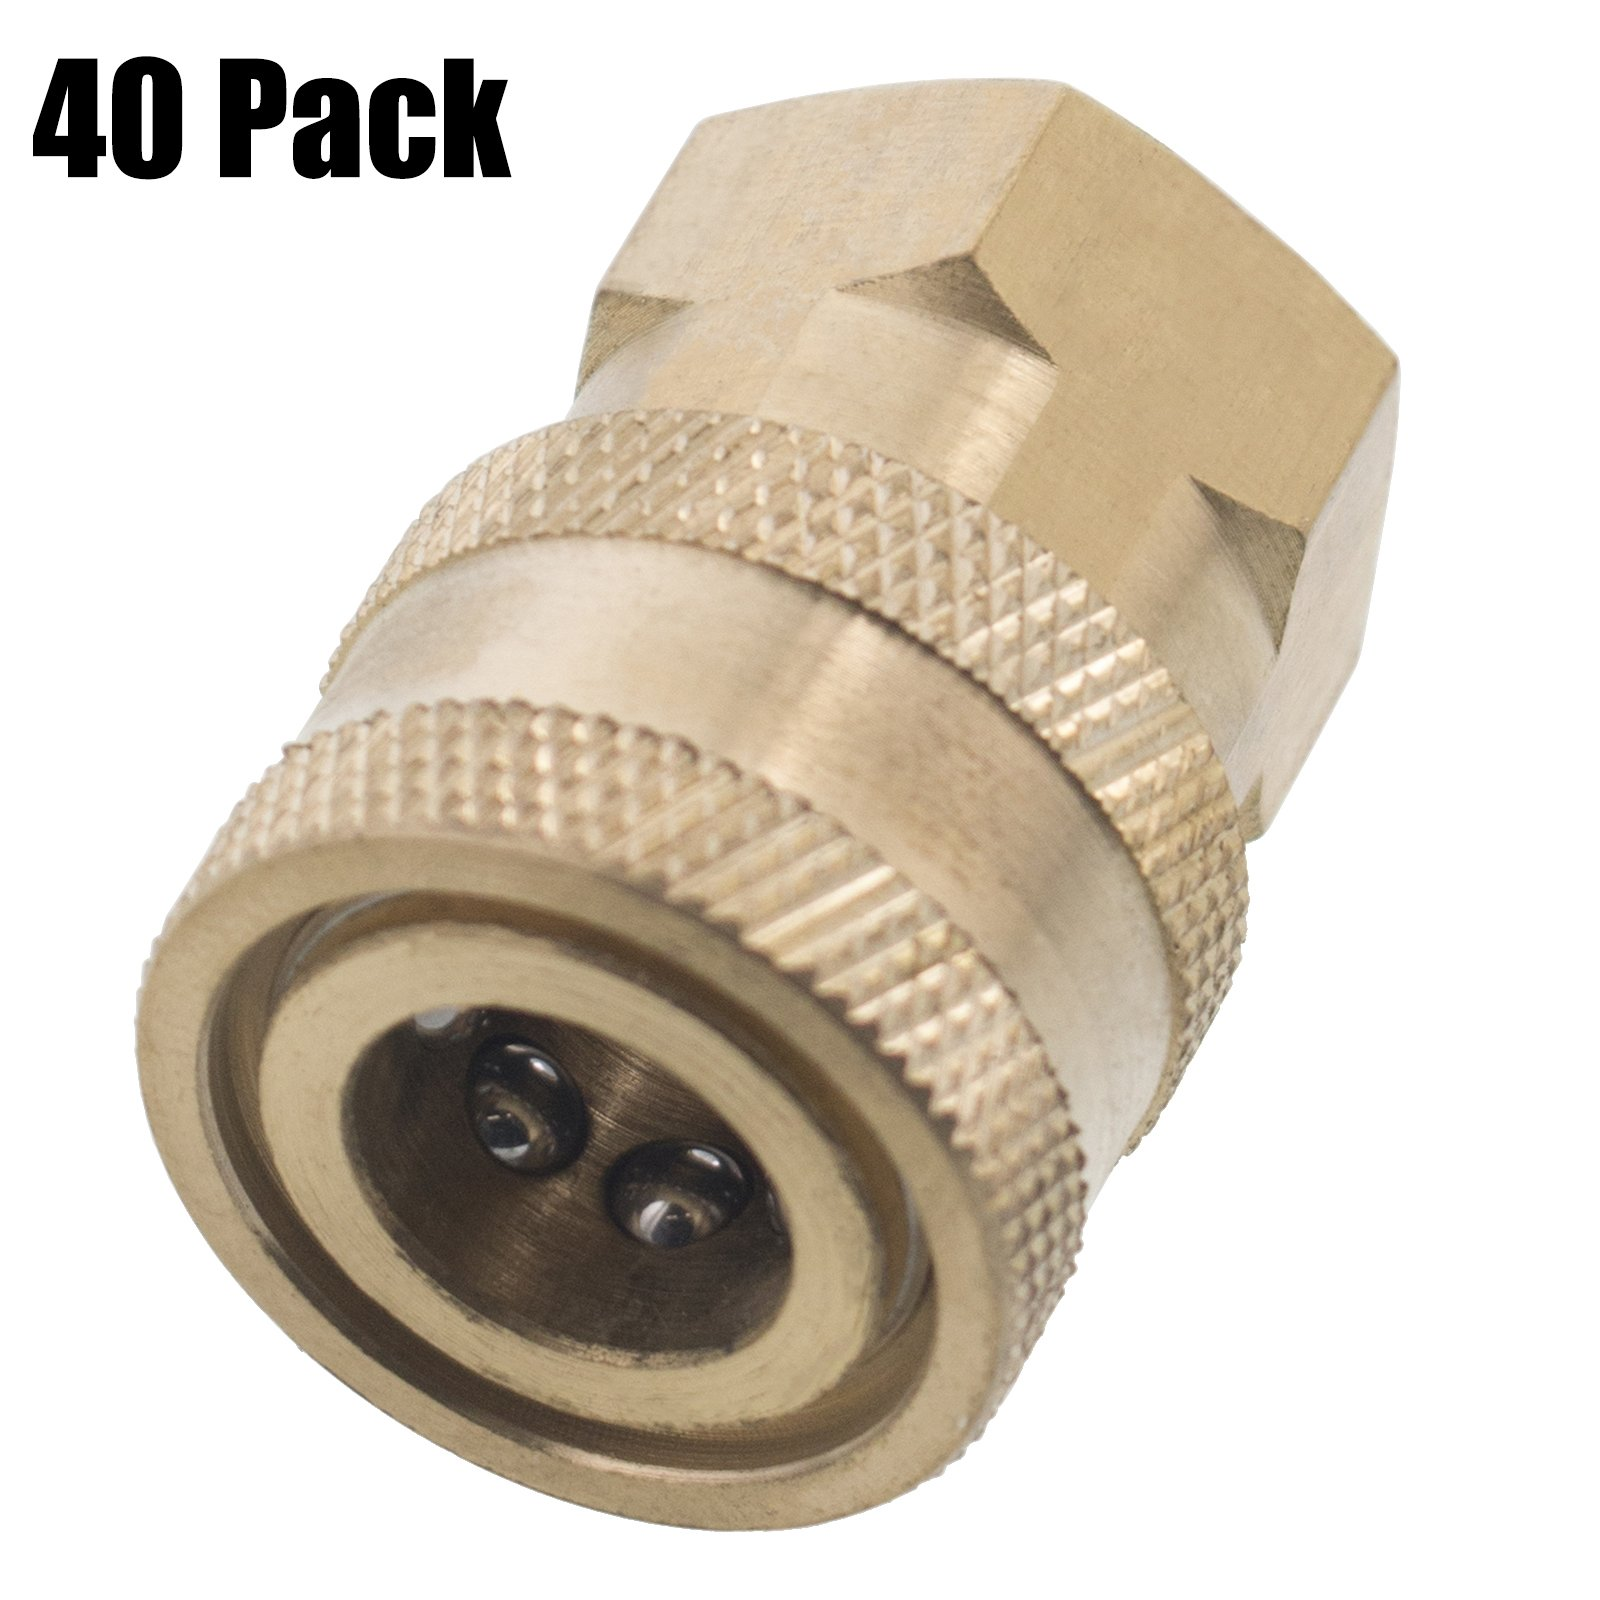 Erie Tools 40 Pressure Washer 1/4 Female NPT to Quick Connect Socket Brass Coupler, High Temp, 4000 PSI, 10.5 GPM by Erie Tools (Image #1)